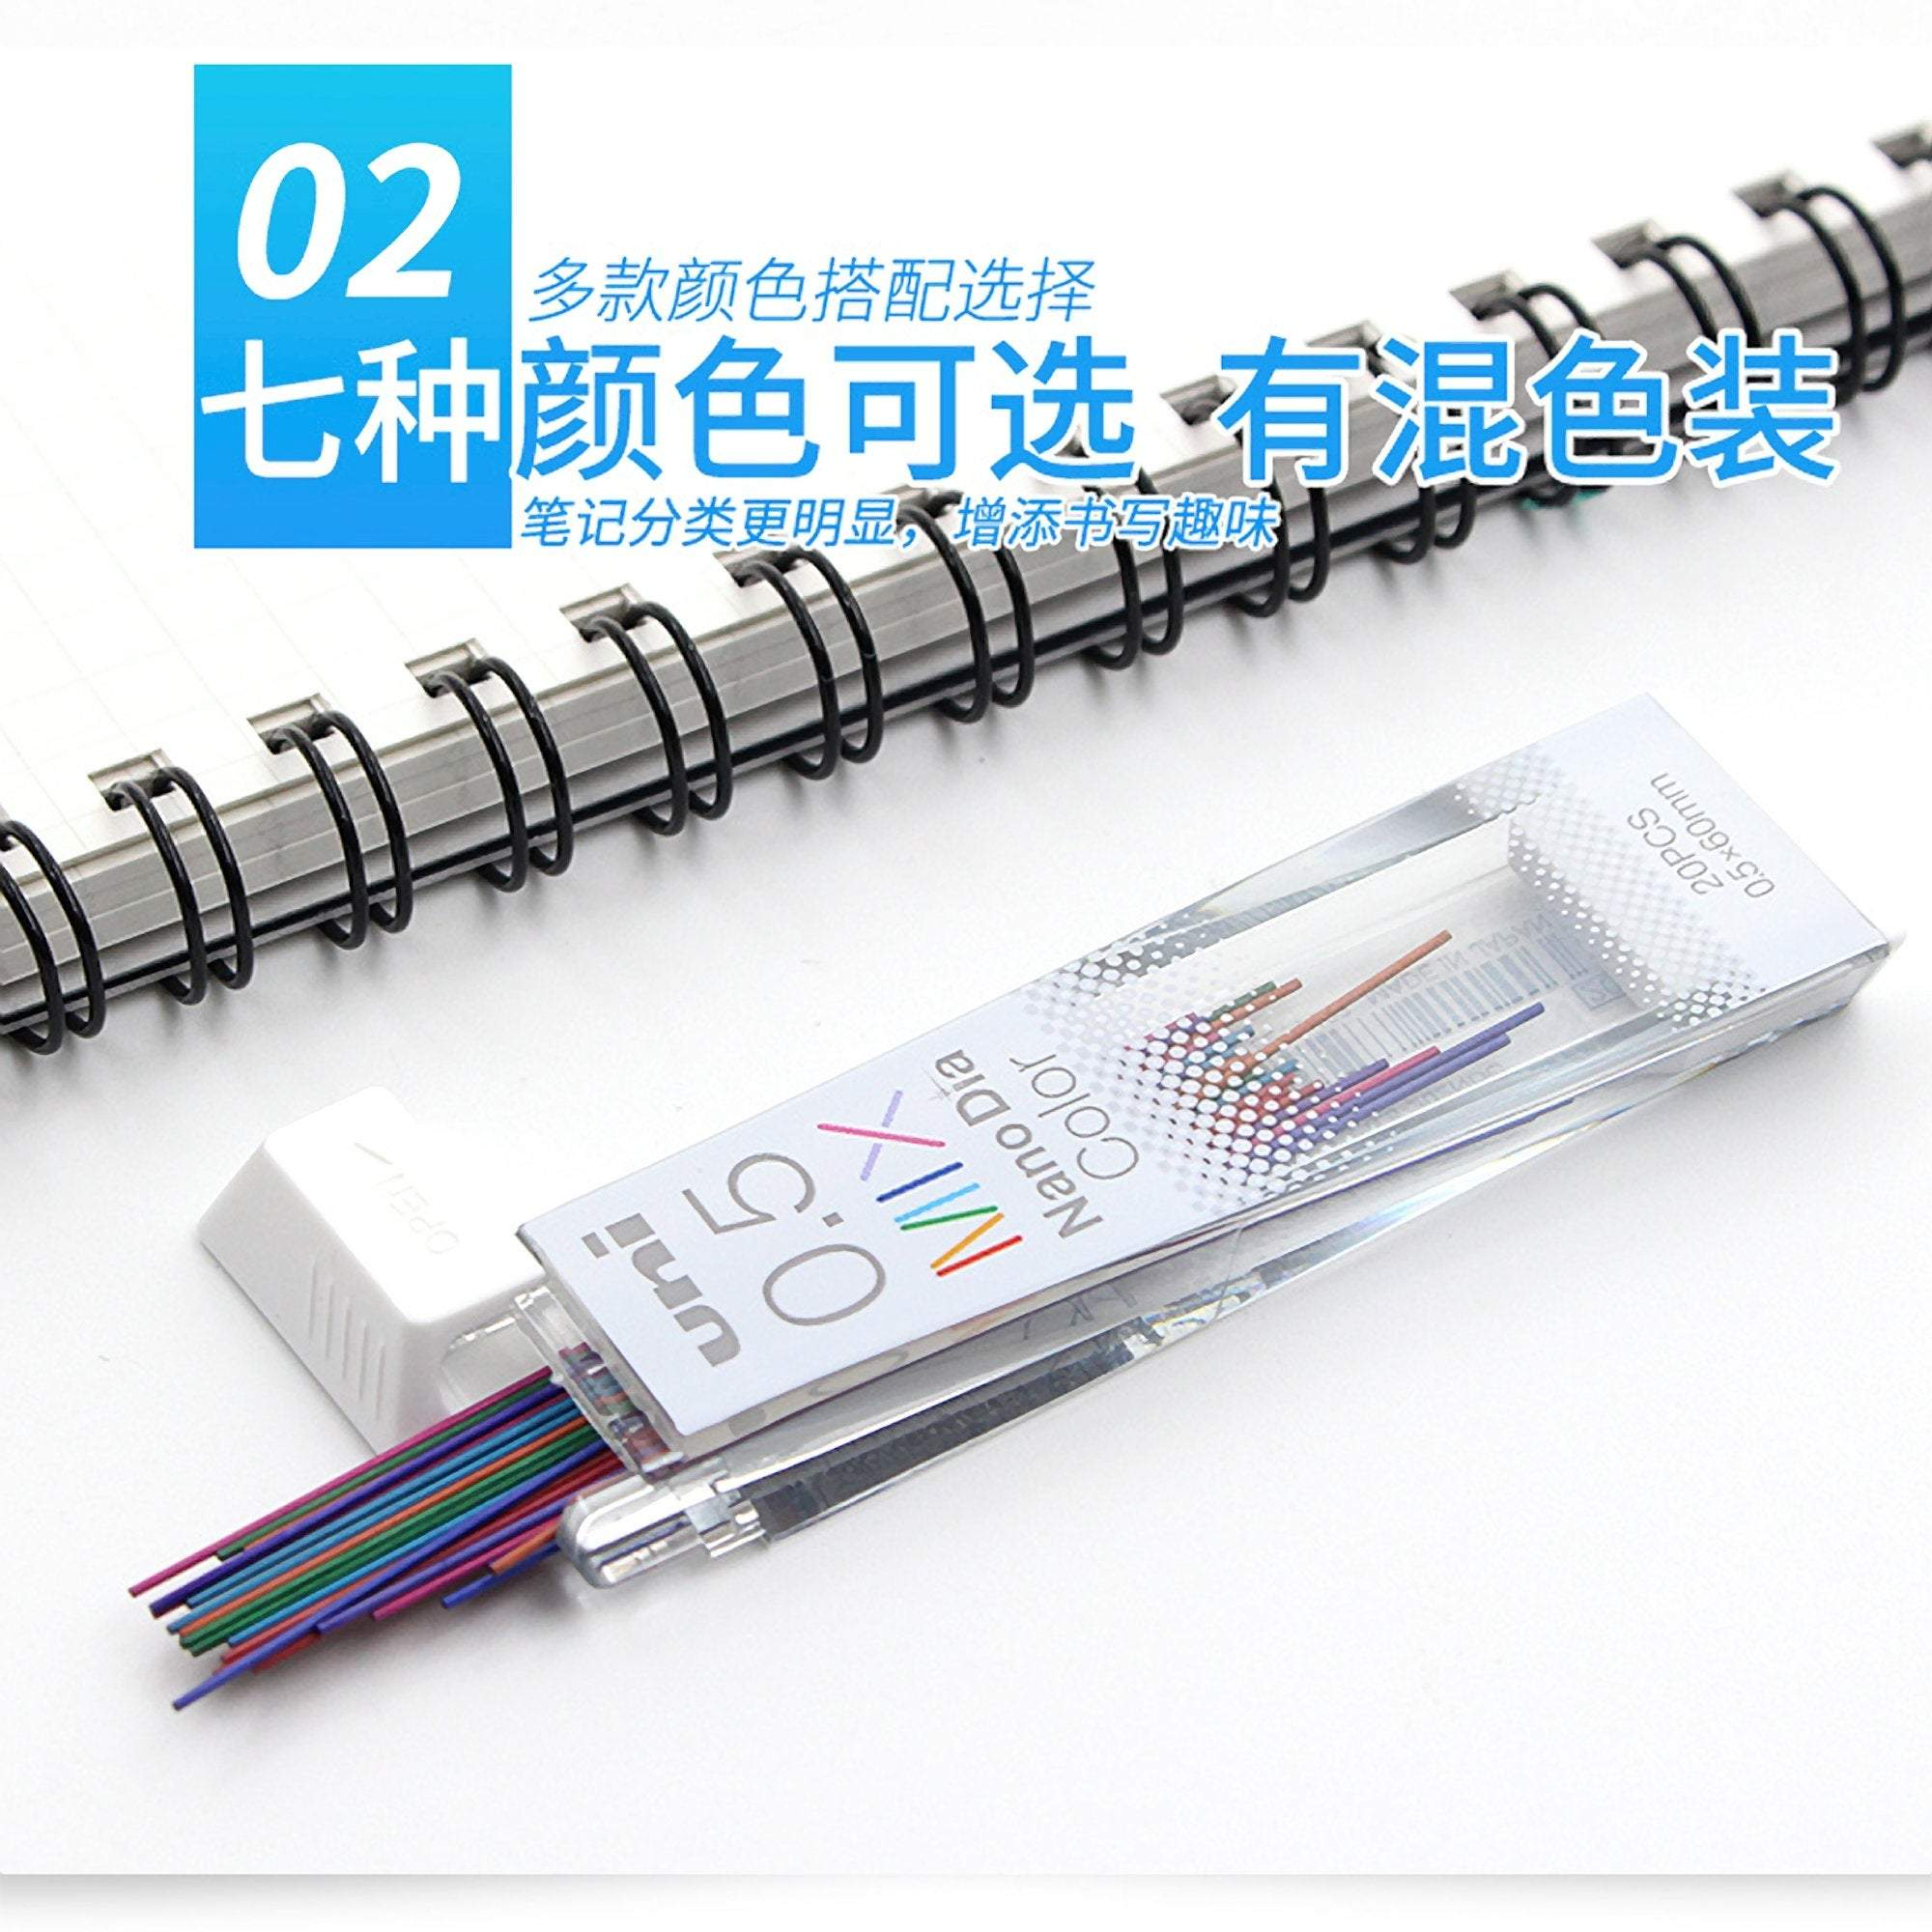 Mitsubishi Uni Sharp Lead Refill Nano Diameter 0.5mm | PINK LEAD - The Stationery Life!